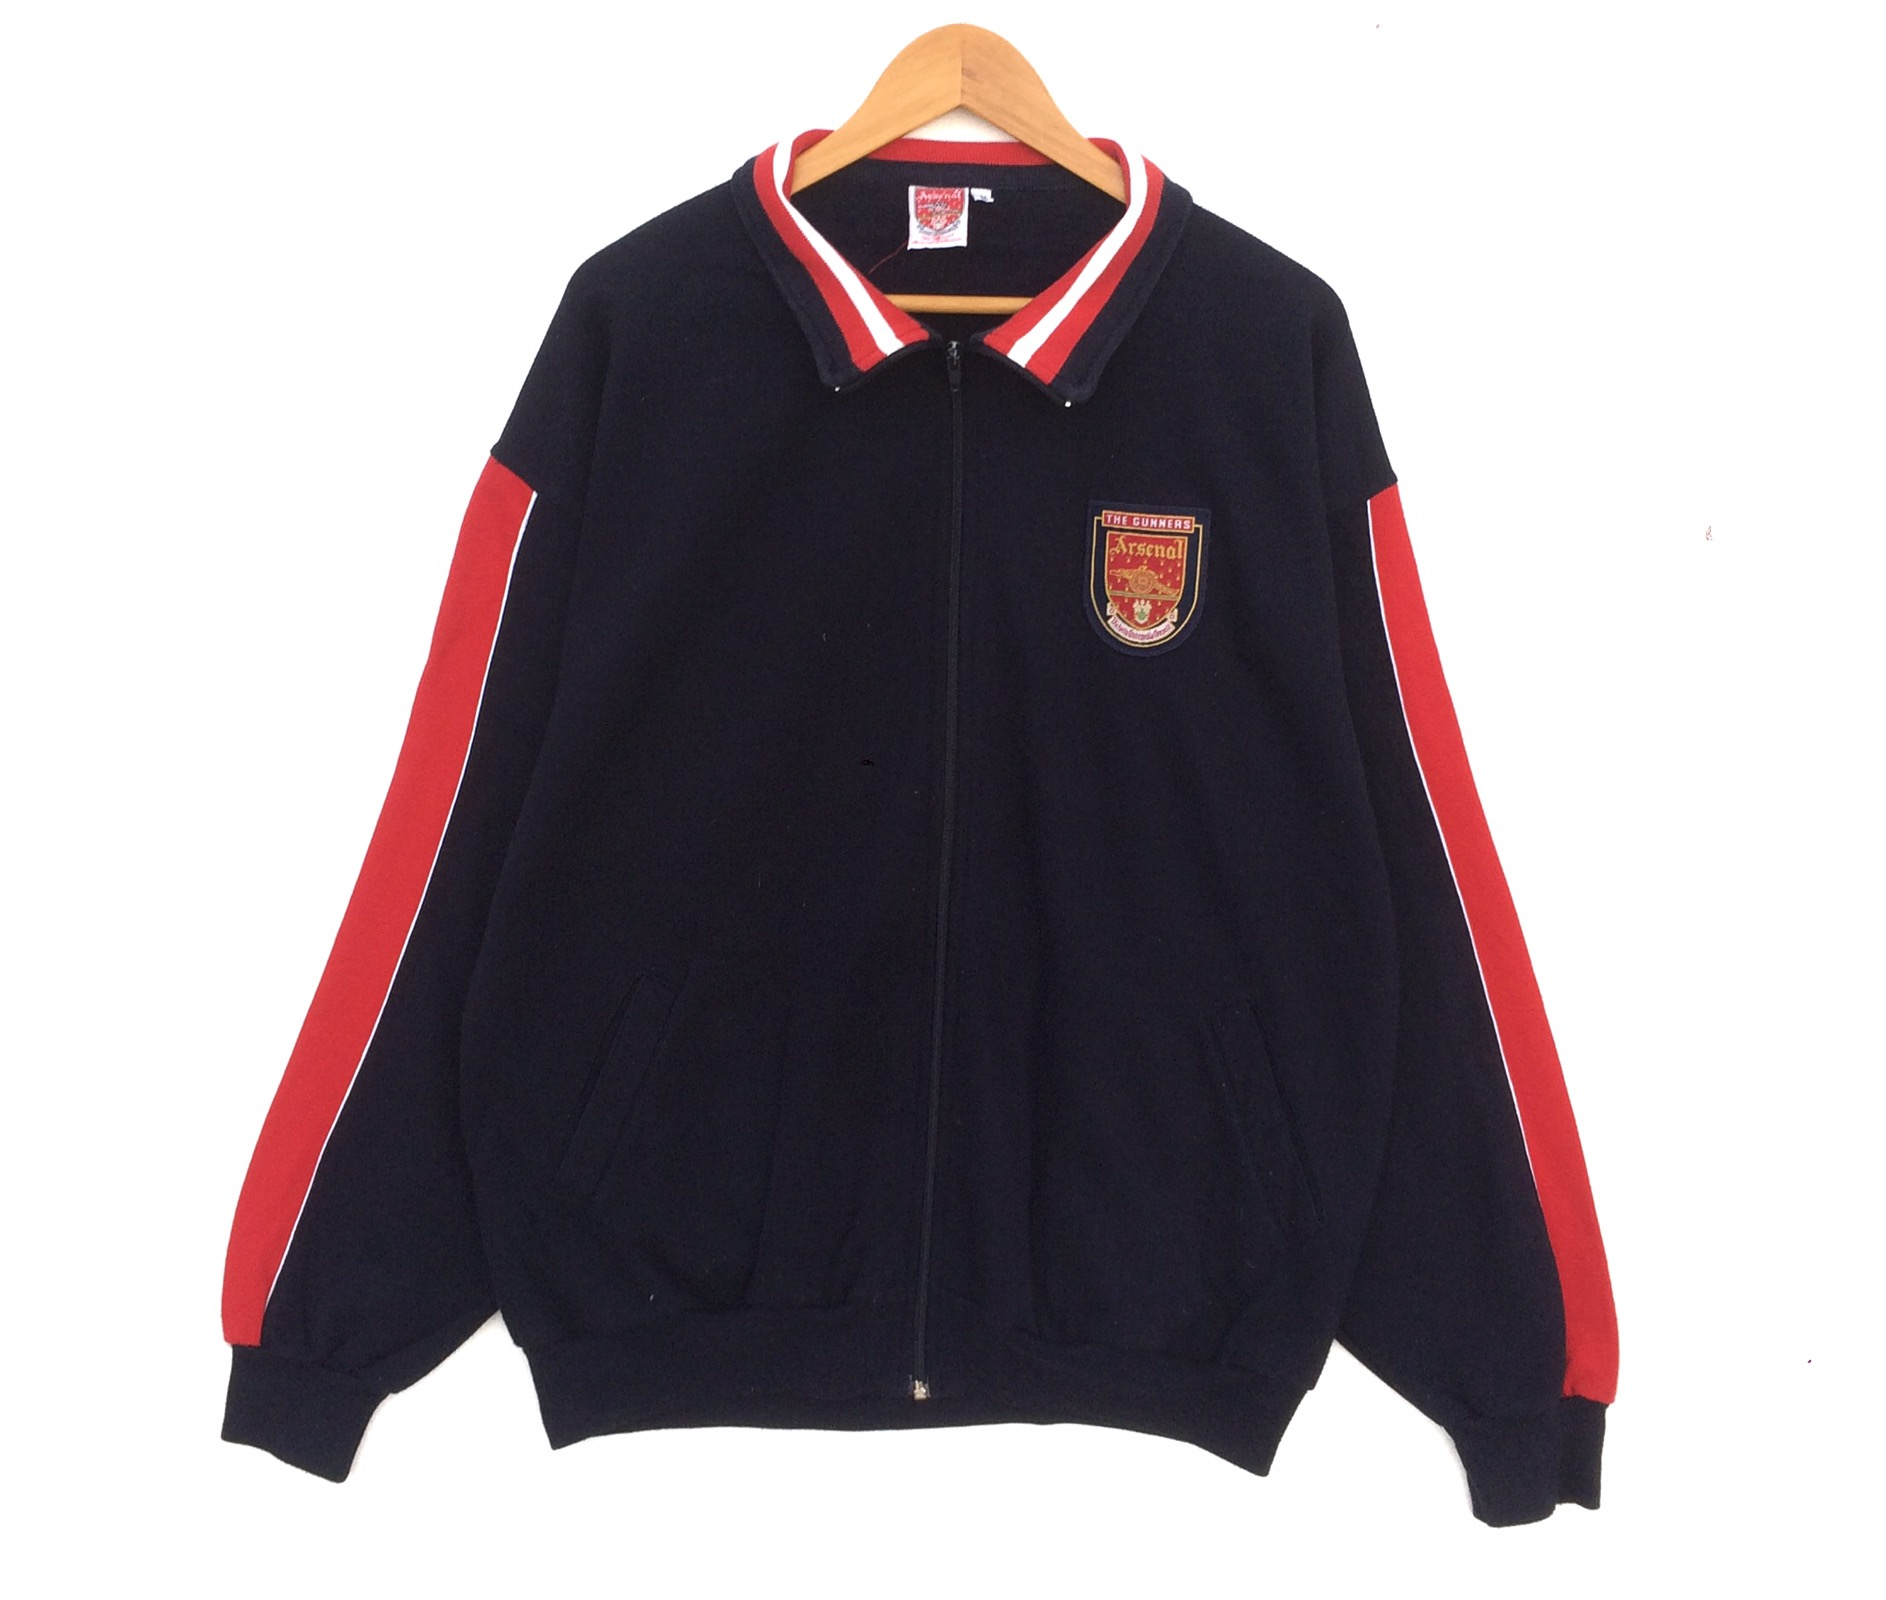 hot sale online 5181a 7bc44 Vintage 90's Arsenal FC Sweater